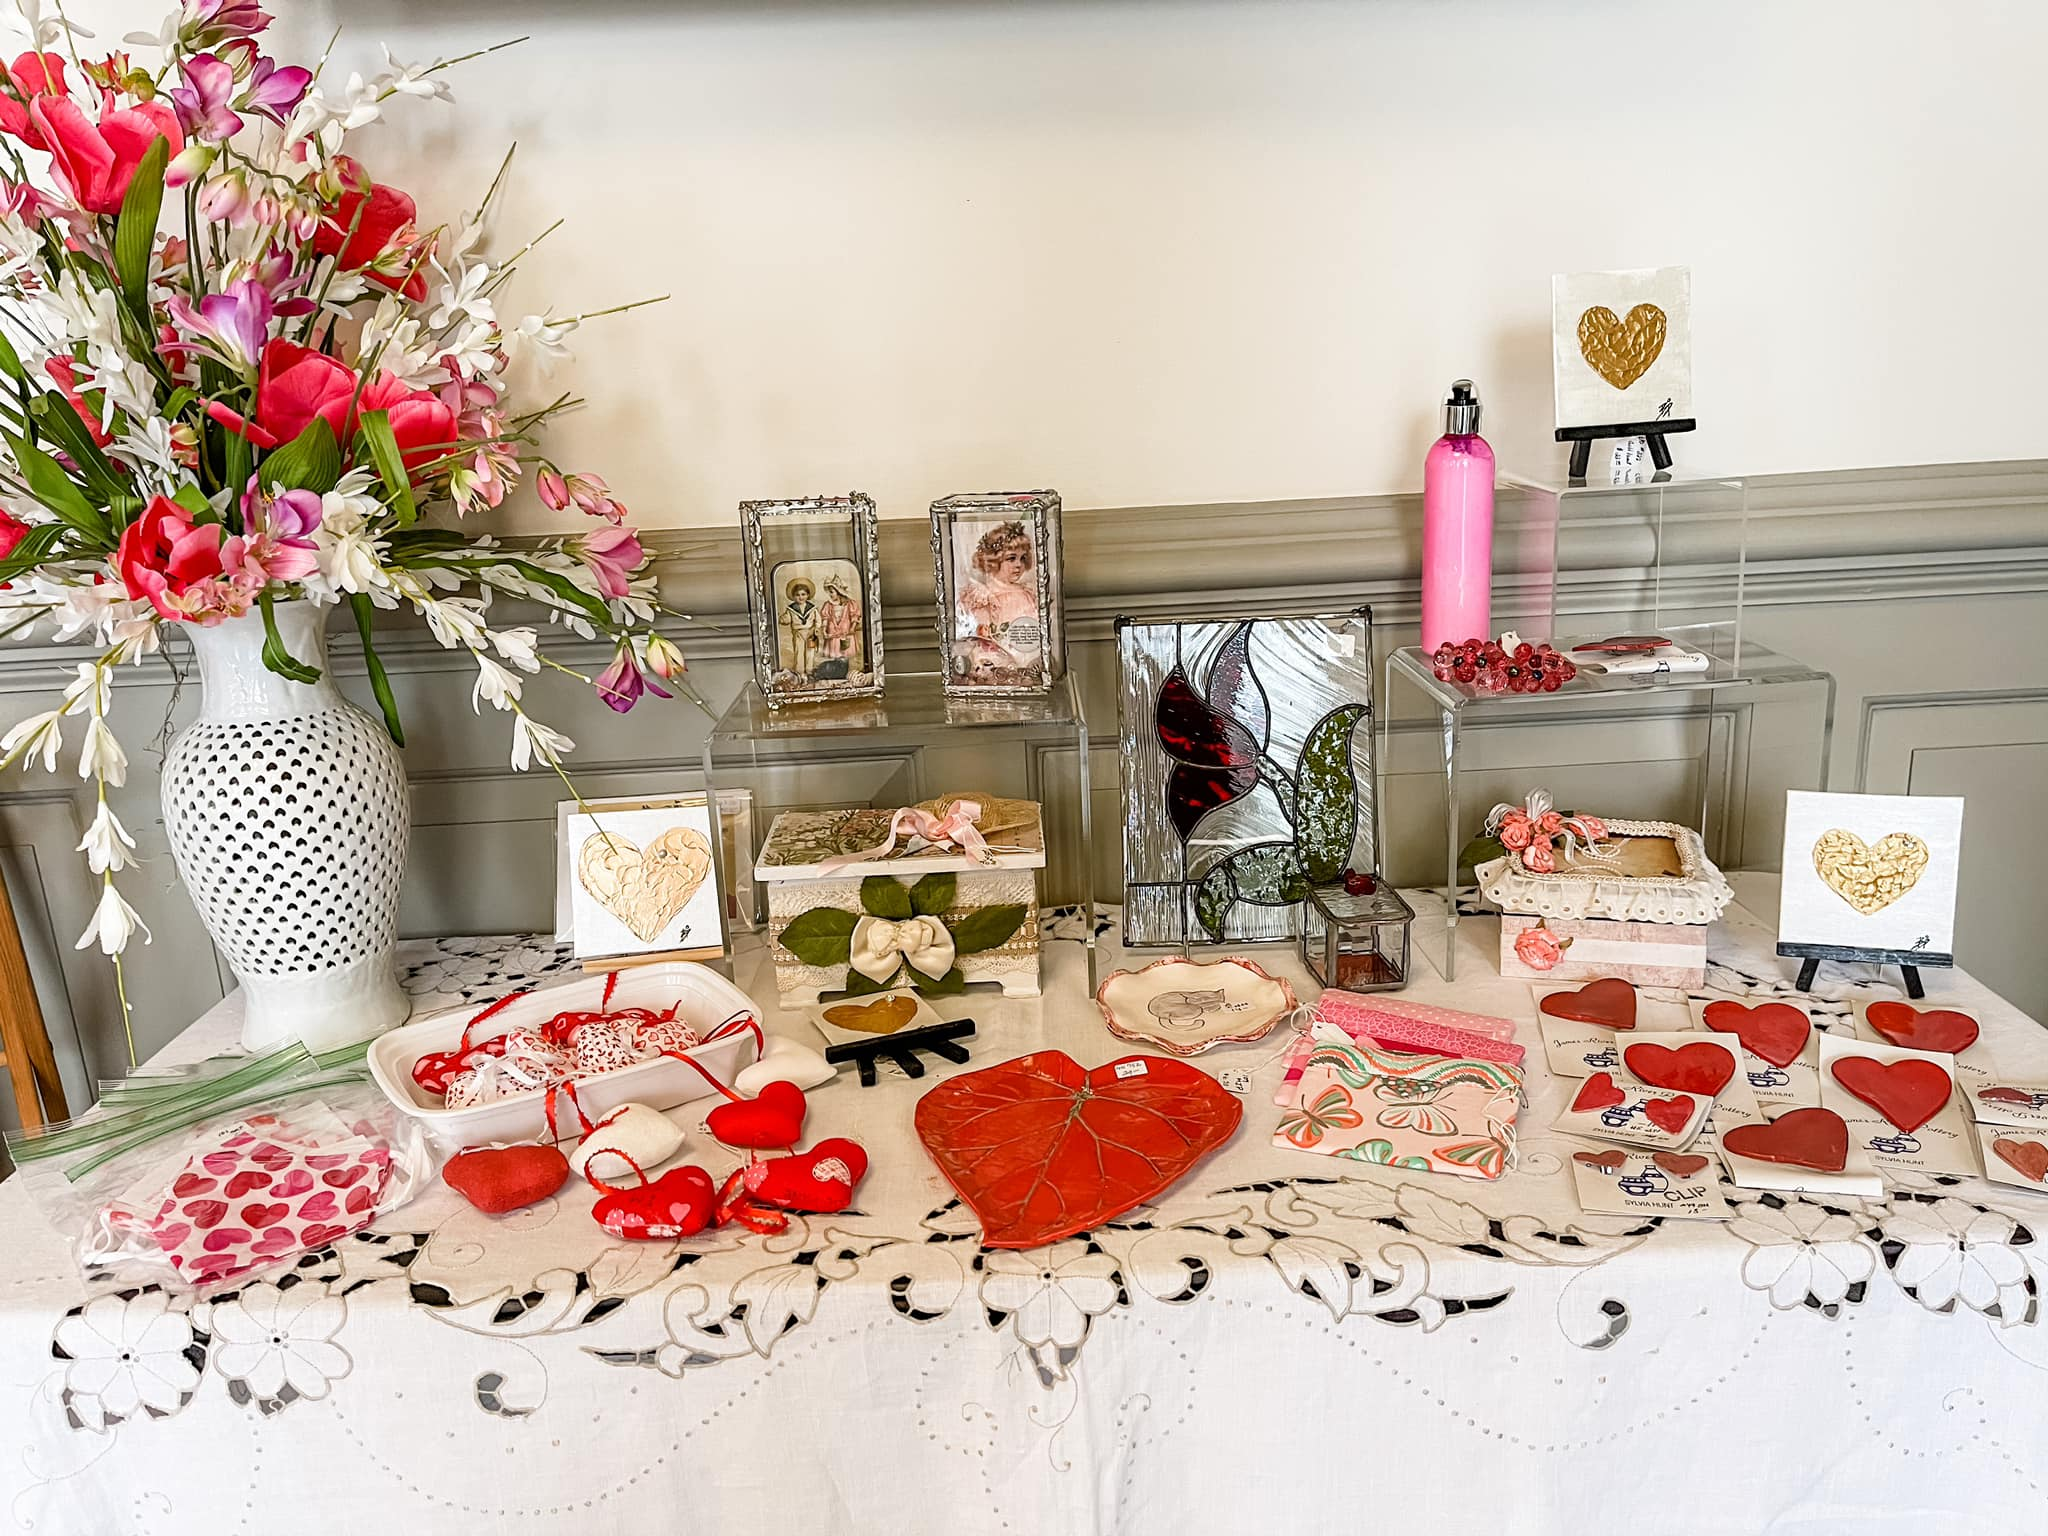 Gallery at York Hall Valentine's Day Display